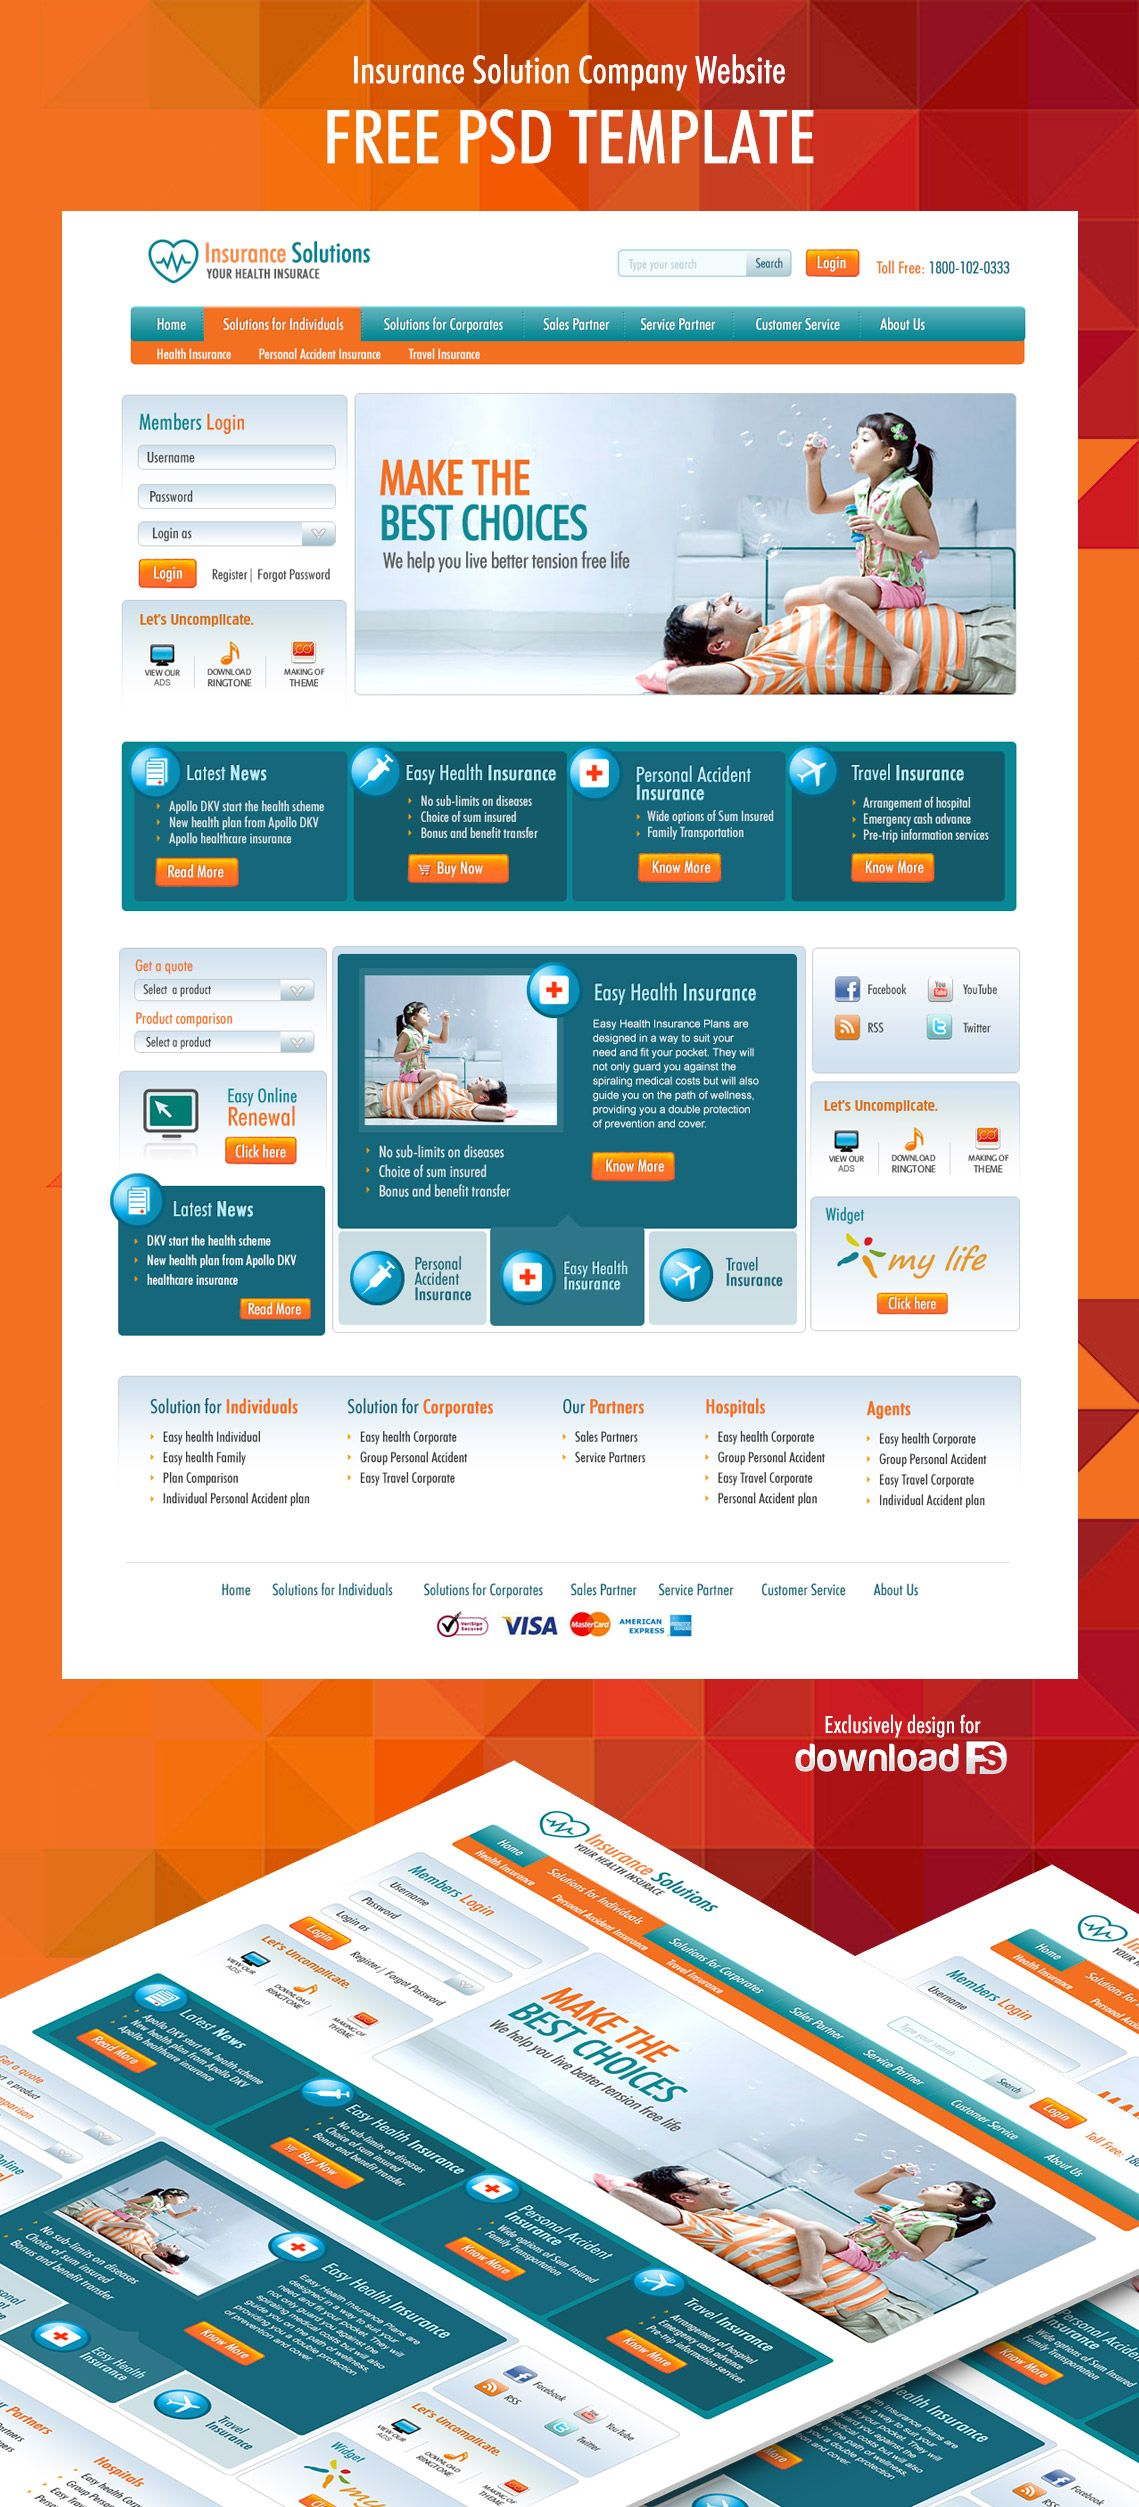 PDownload Insurance Solution Company Website Free Psd Template